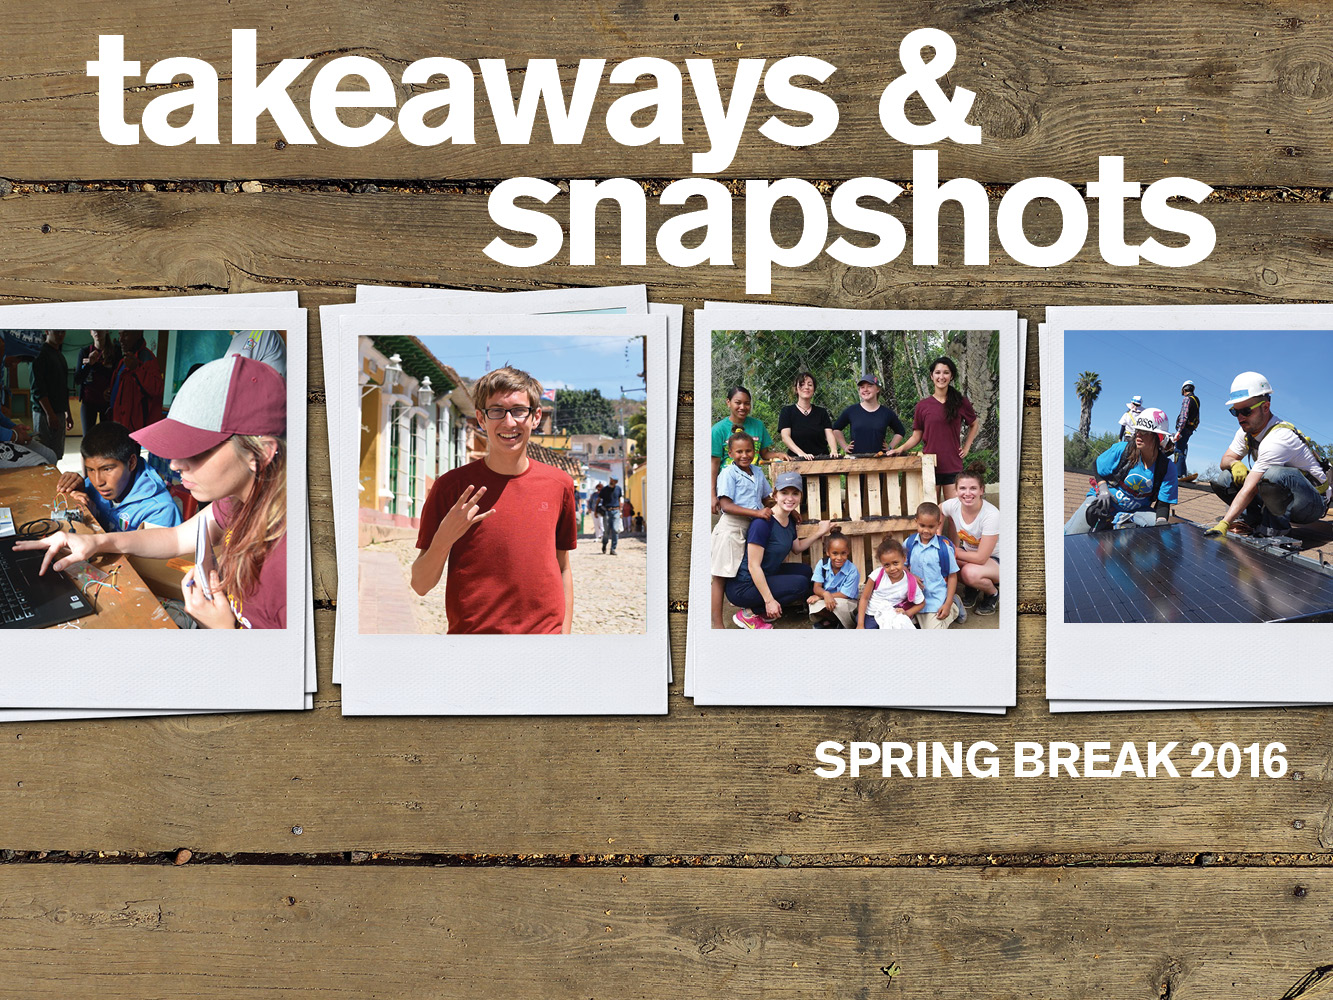 Engineering takeaways and global snapshots from spring break